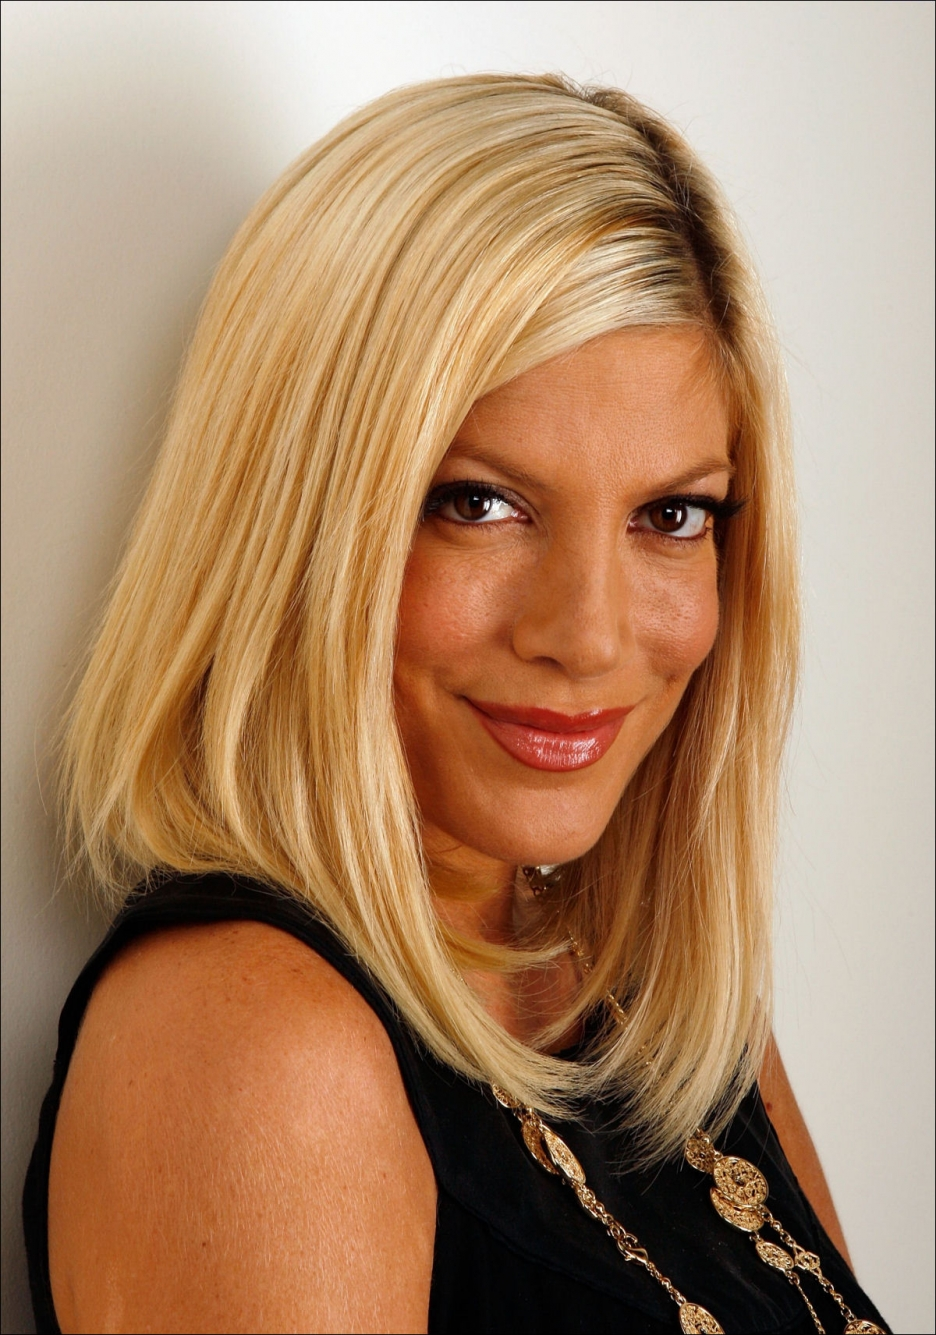 Tori Spelling Jake And The Never Land Pirates Wiki